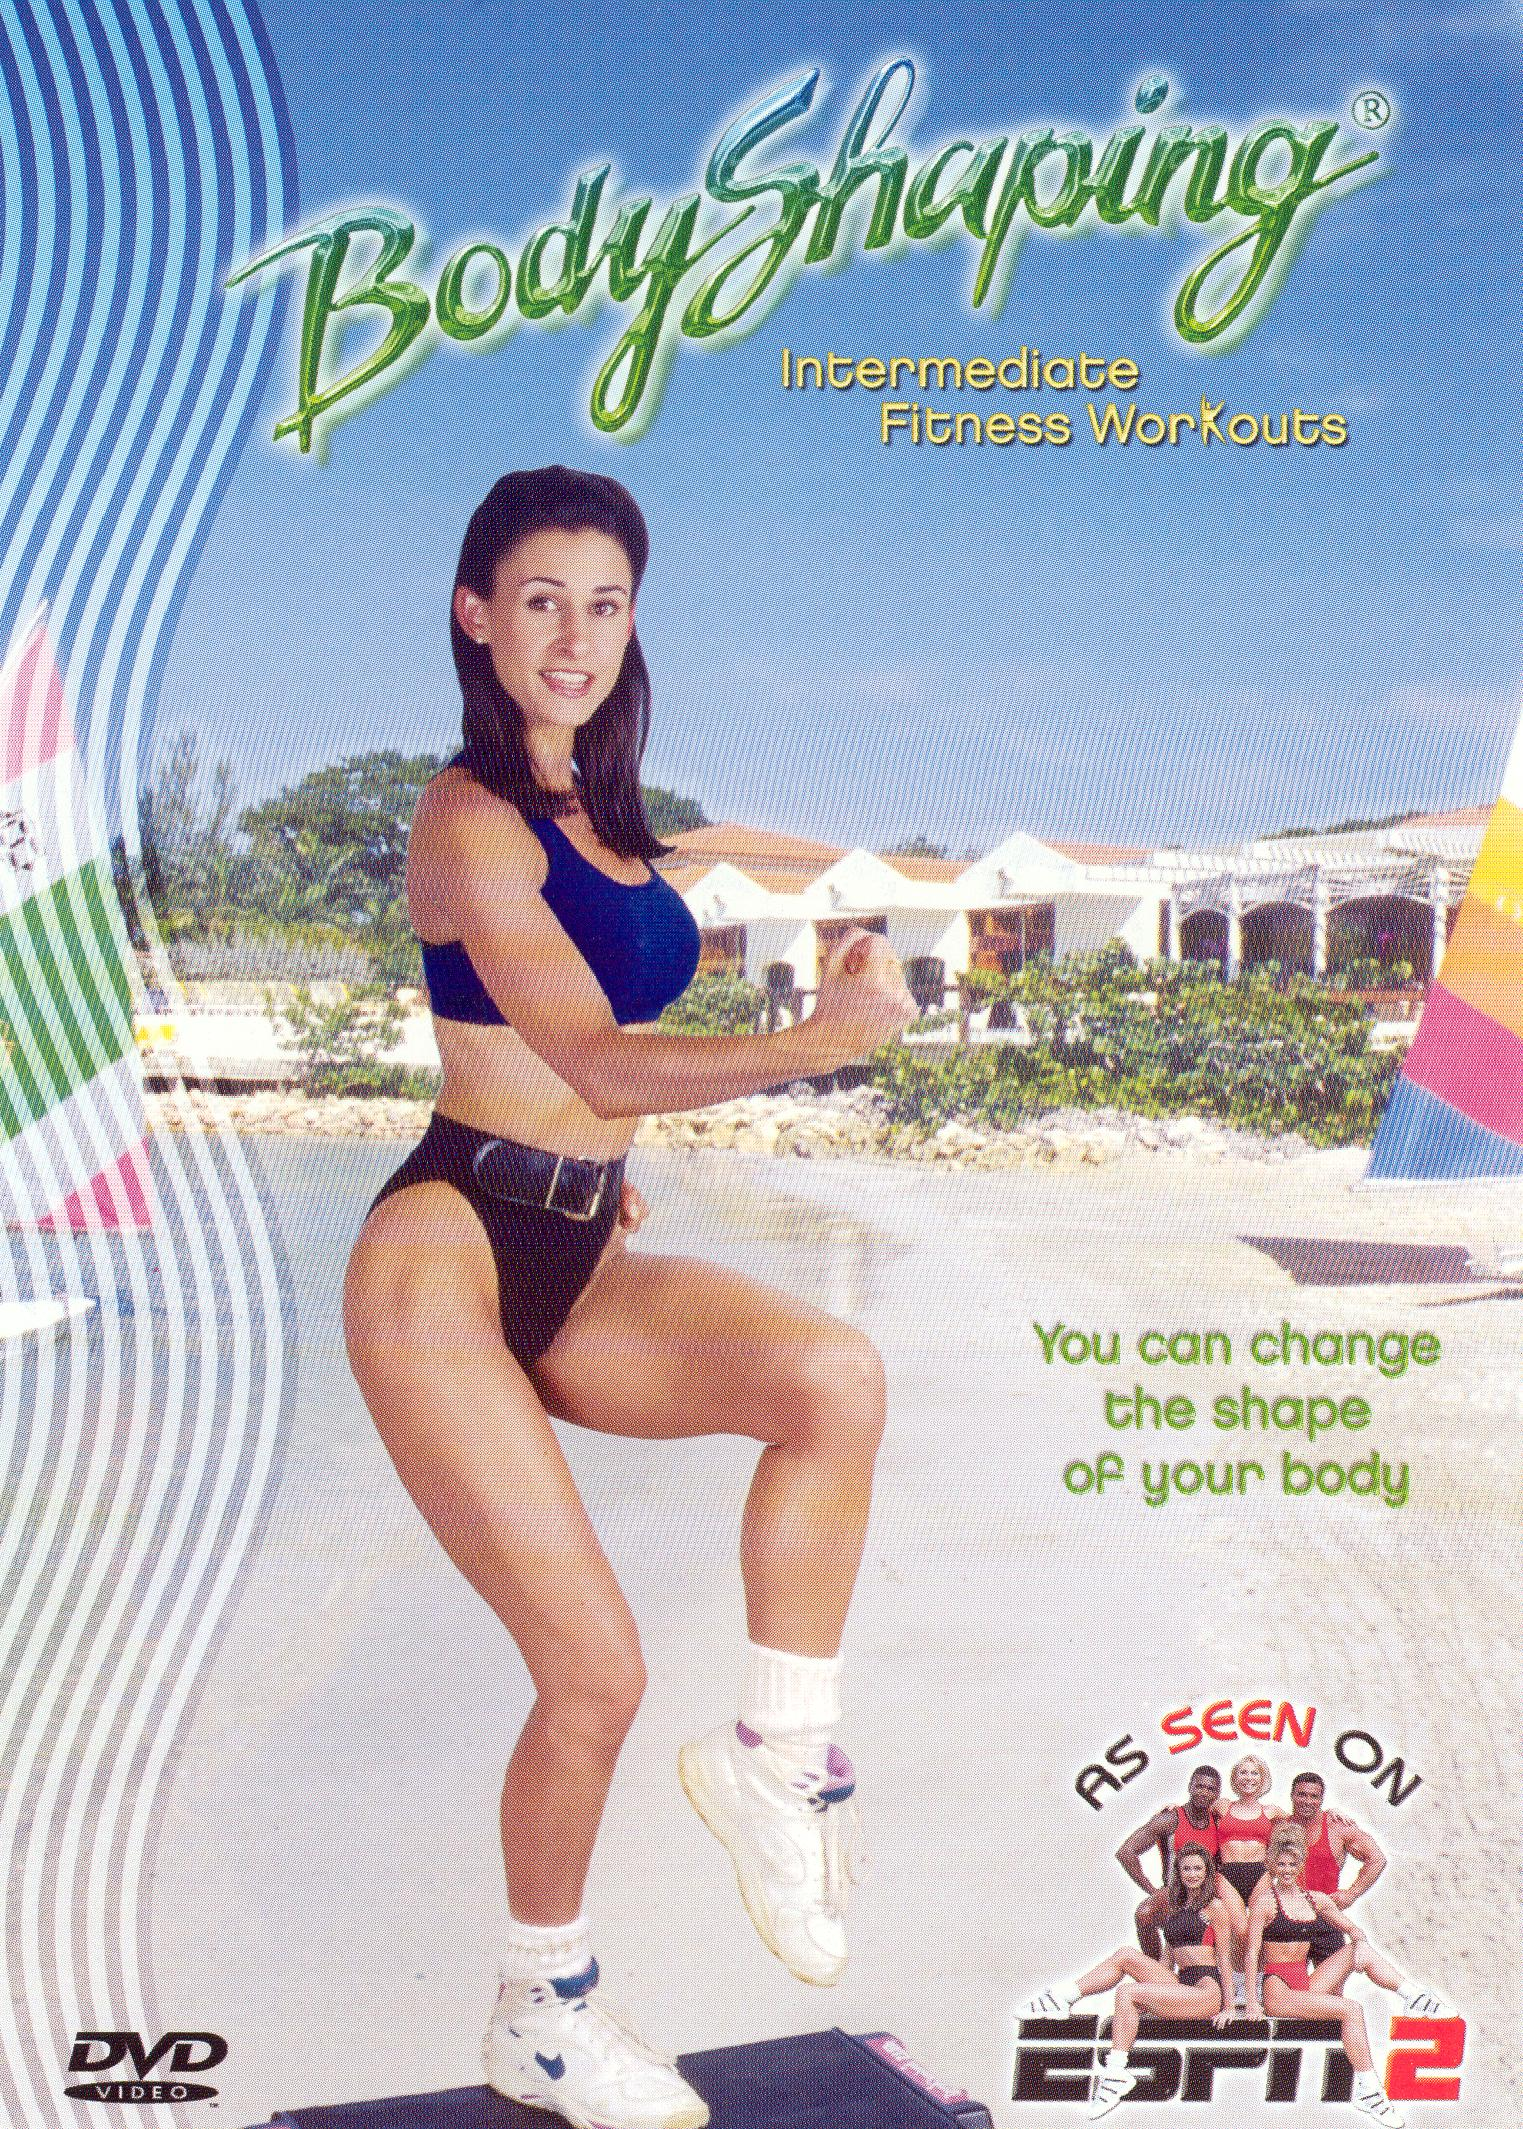 ESPN: BodyShaping - Intermediate Fitness Workout